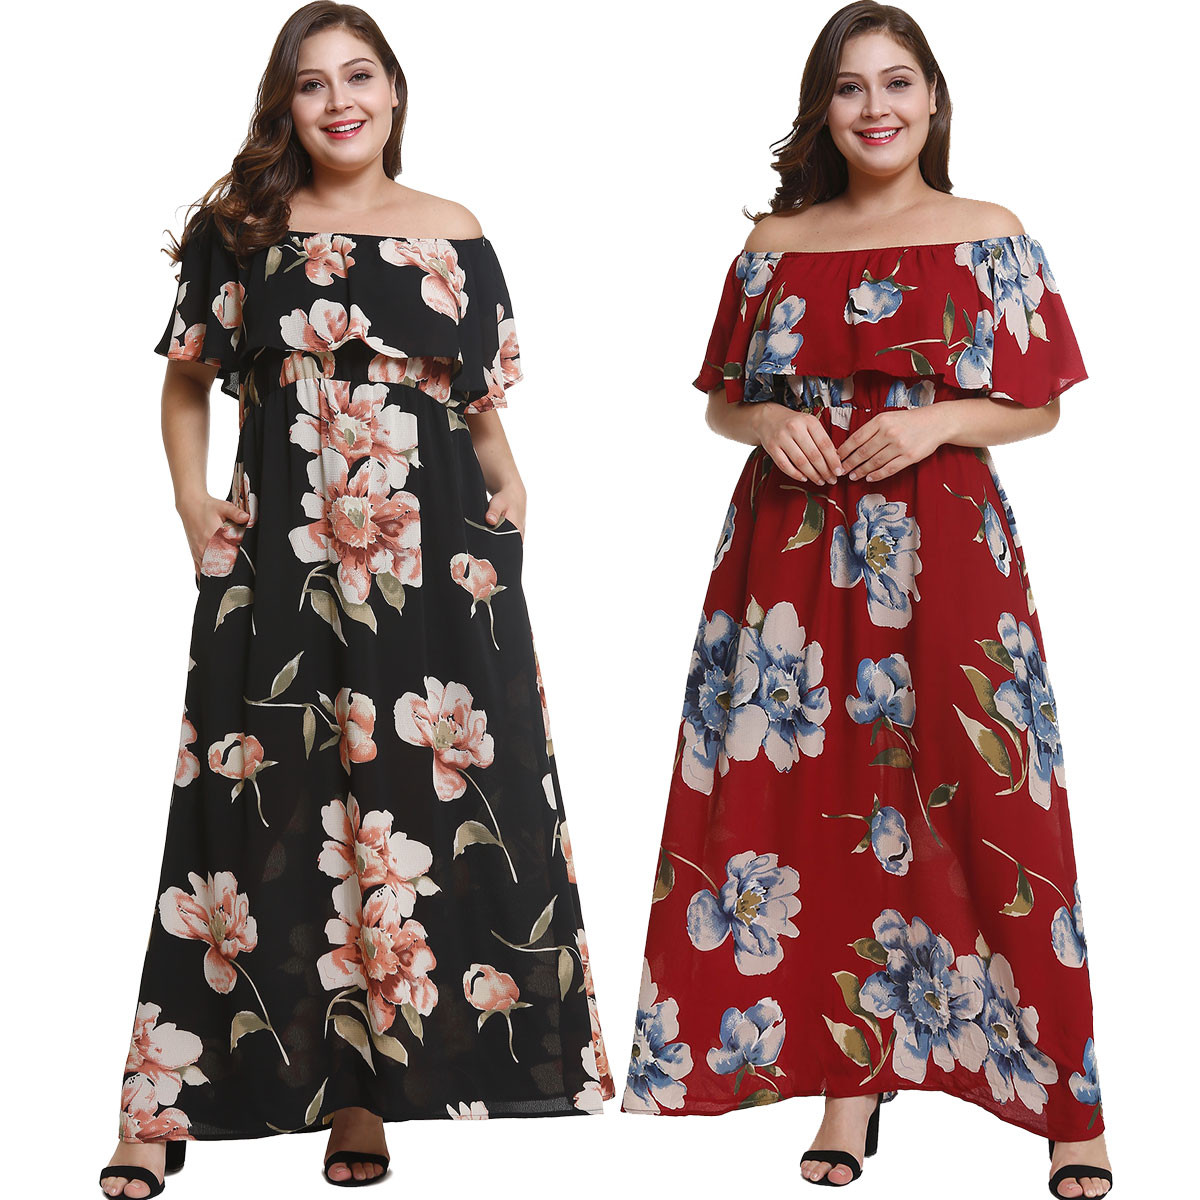 US $15.74 48% OFF|Wipalo Plus Size Floral Ruffled Print Maxi Dress Women  Bohemian Off Shoulder Short Sleeve Summer Dresses Women Clothing  Vestidos-in ...